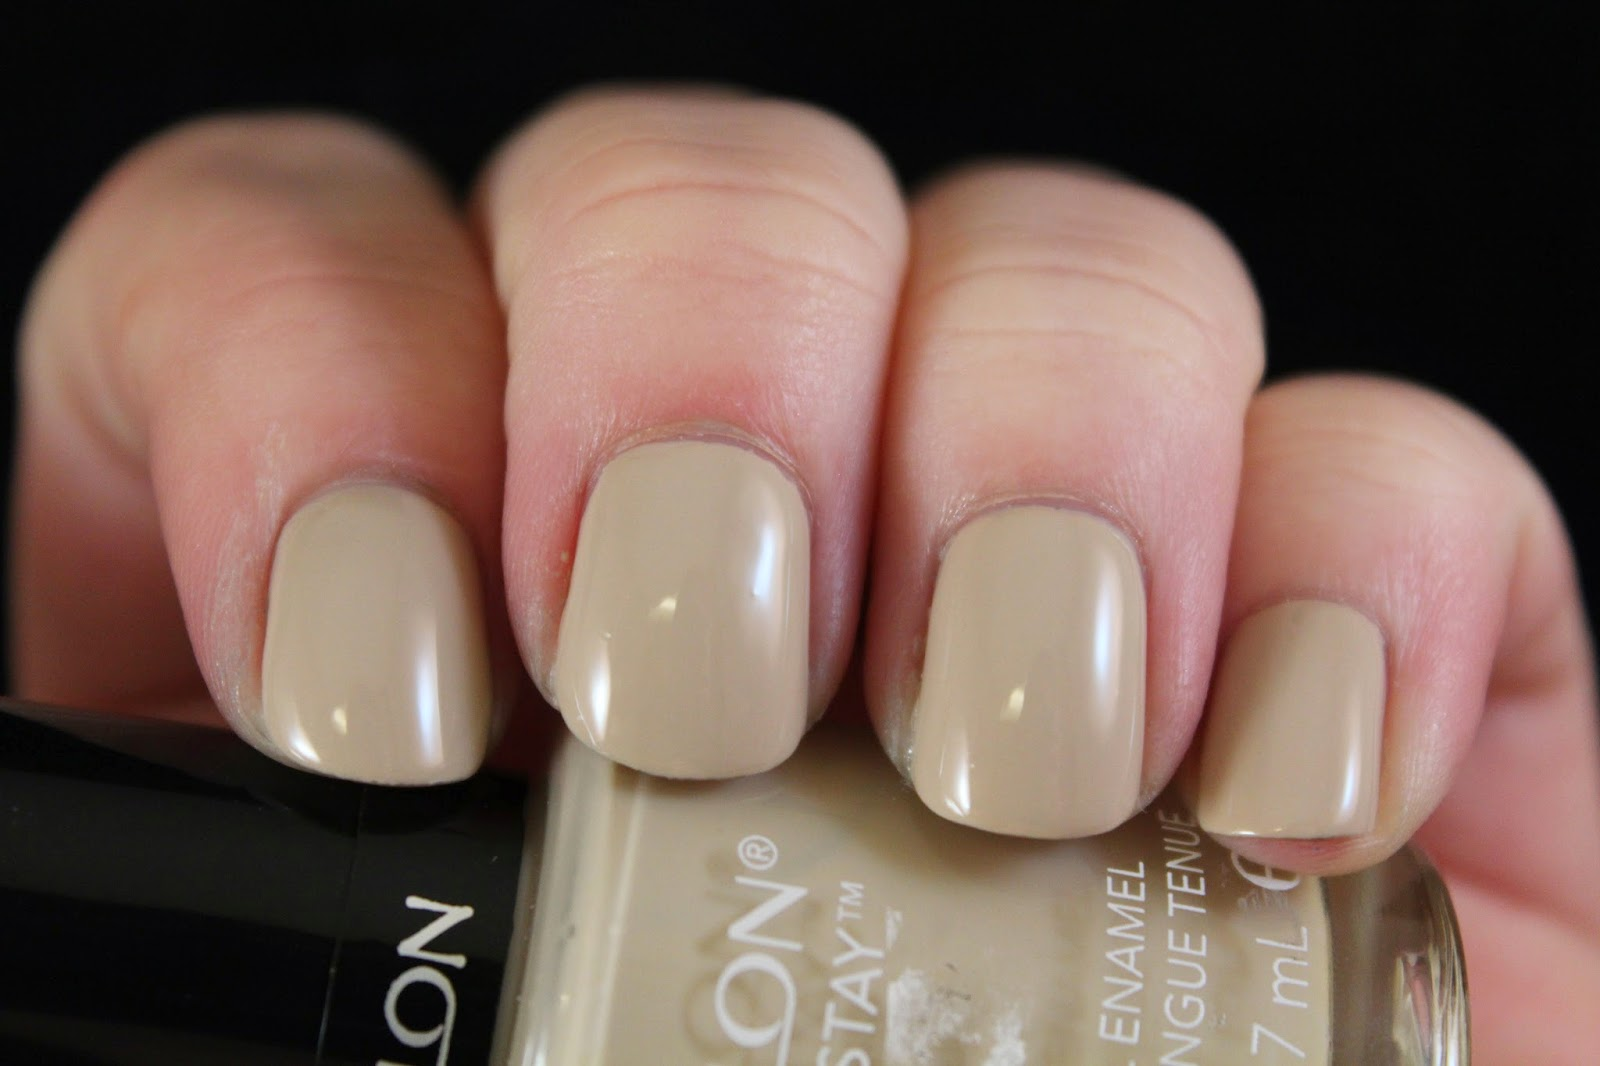 Revlon enamel nail polish best image nail 2017 revlon colorstay long wear nail polish enamel gel 300 bare bones nvjuhfo Image collections